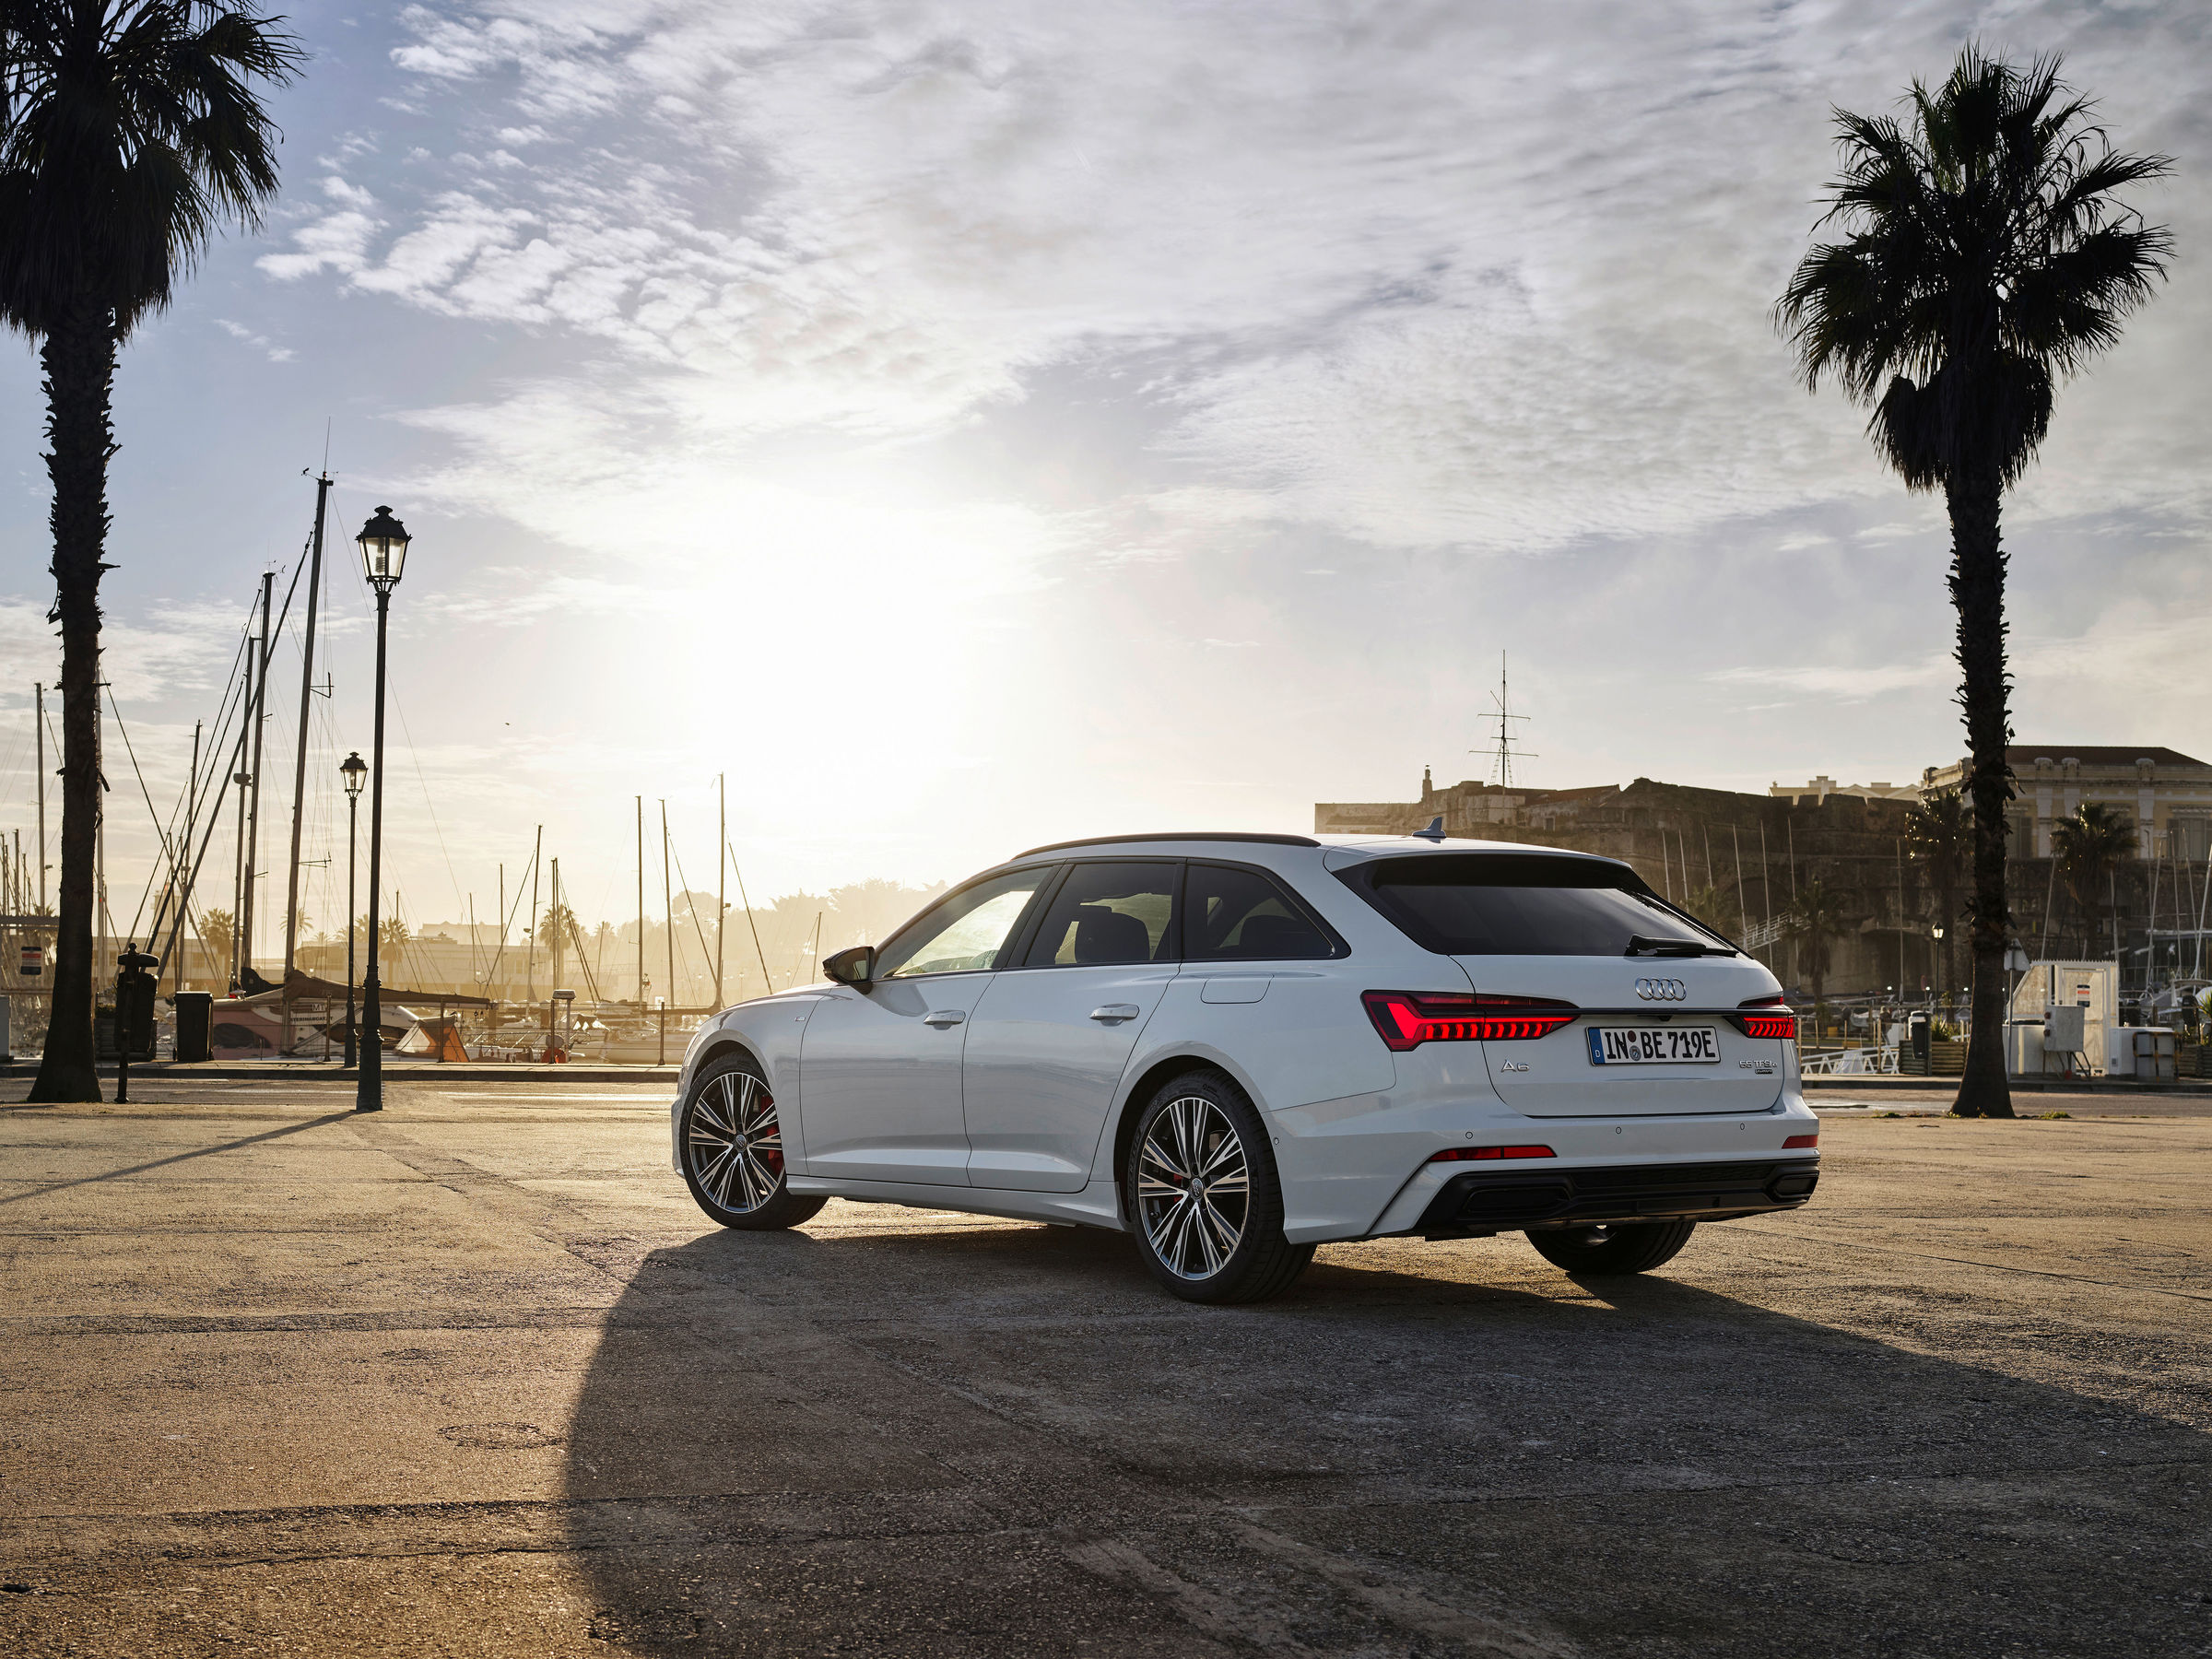 Audi full-size station wagon now as a plug-in hybrid: the new A6 Avant TFSI e quattro - Image 2